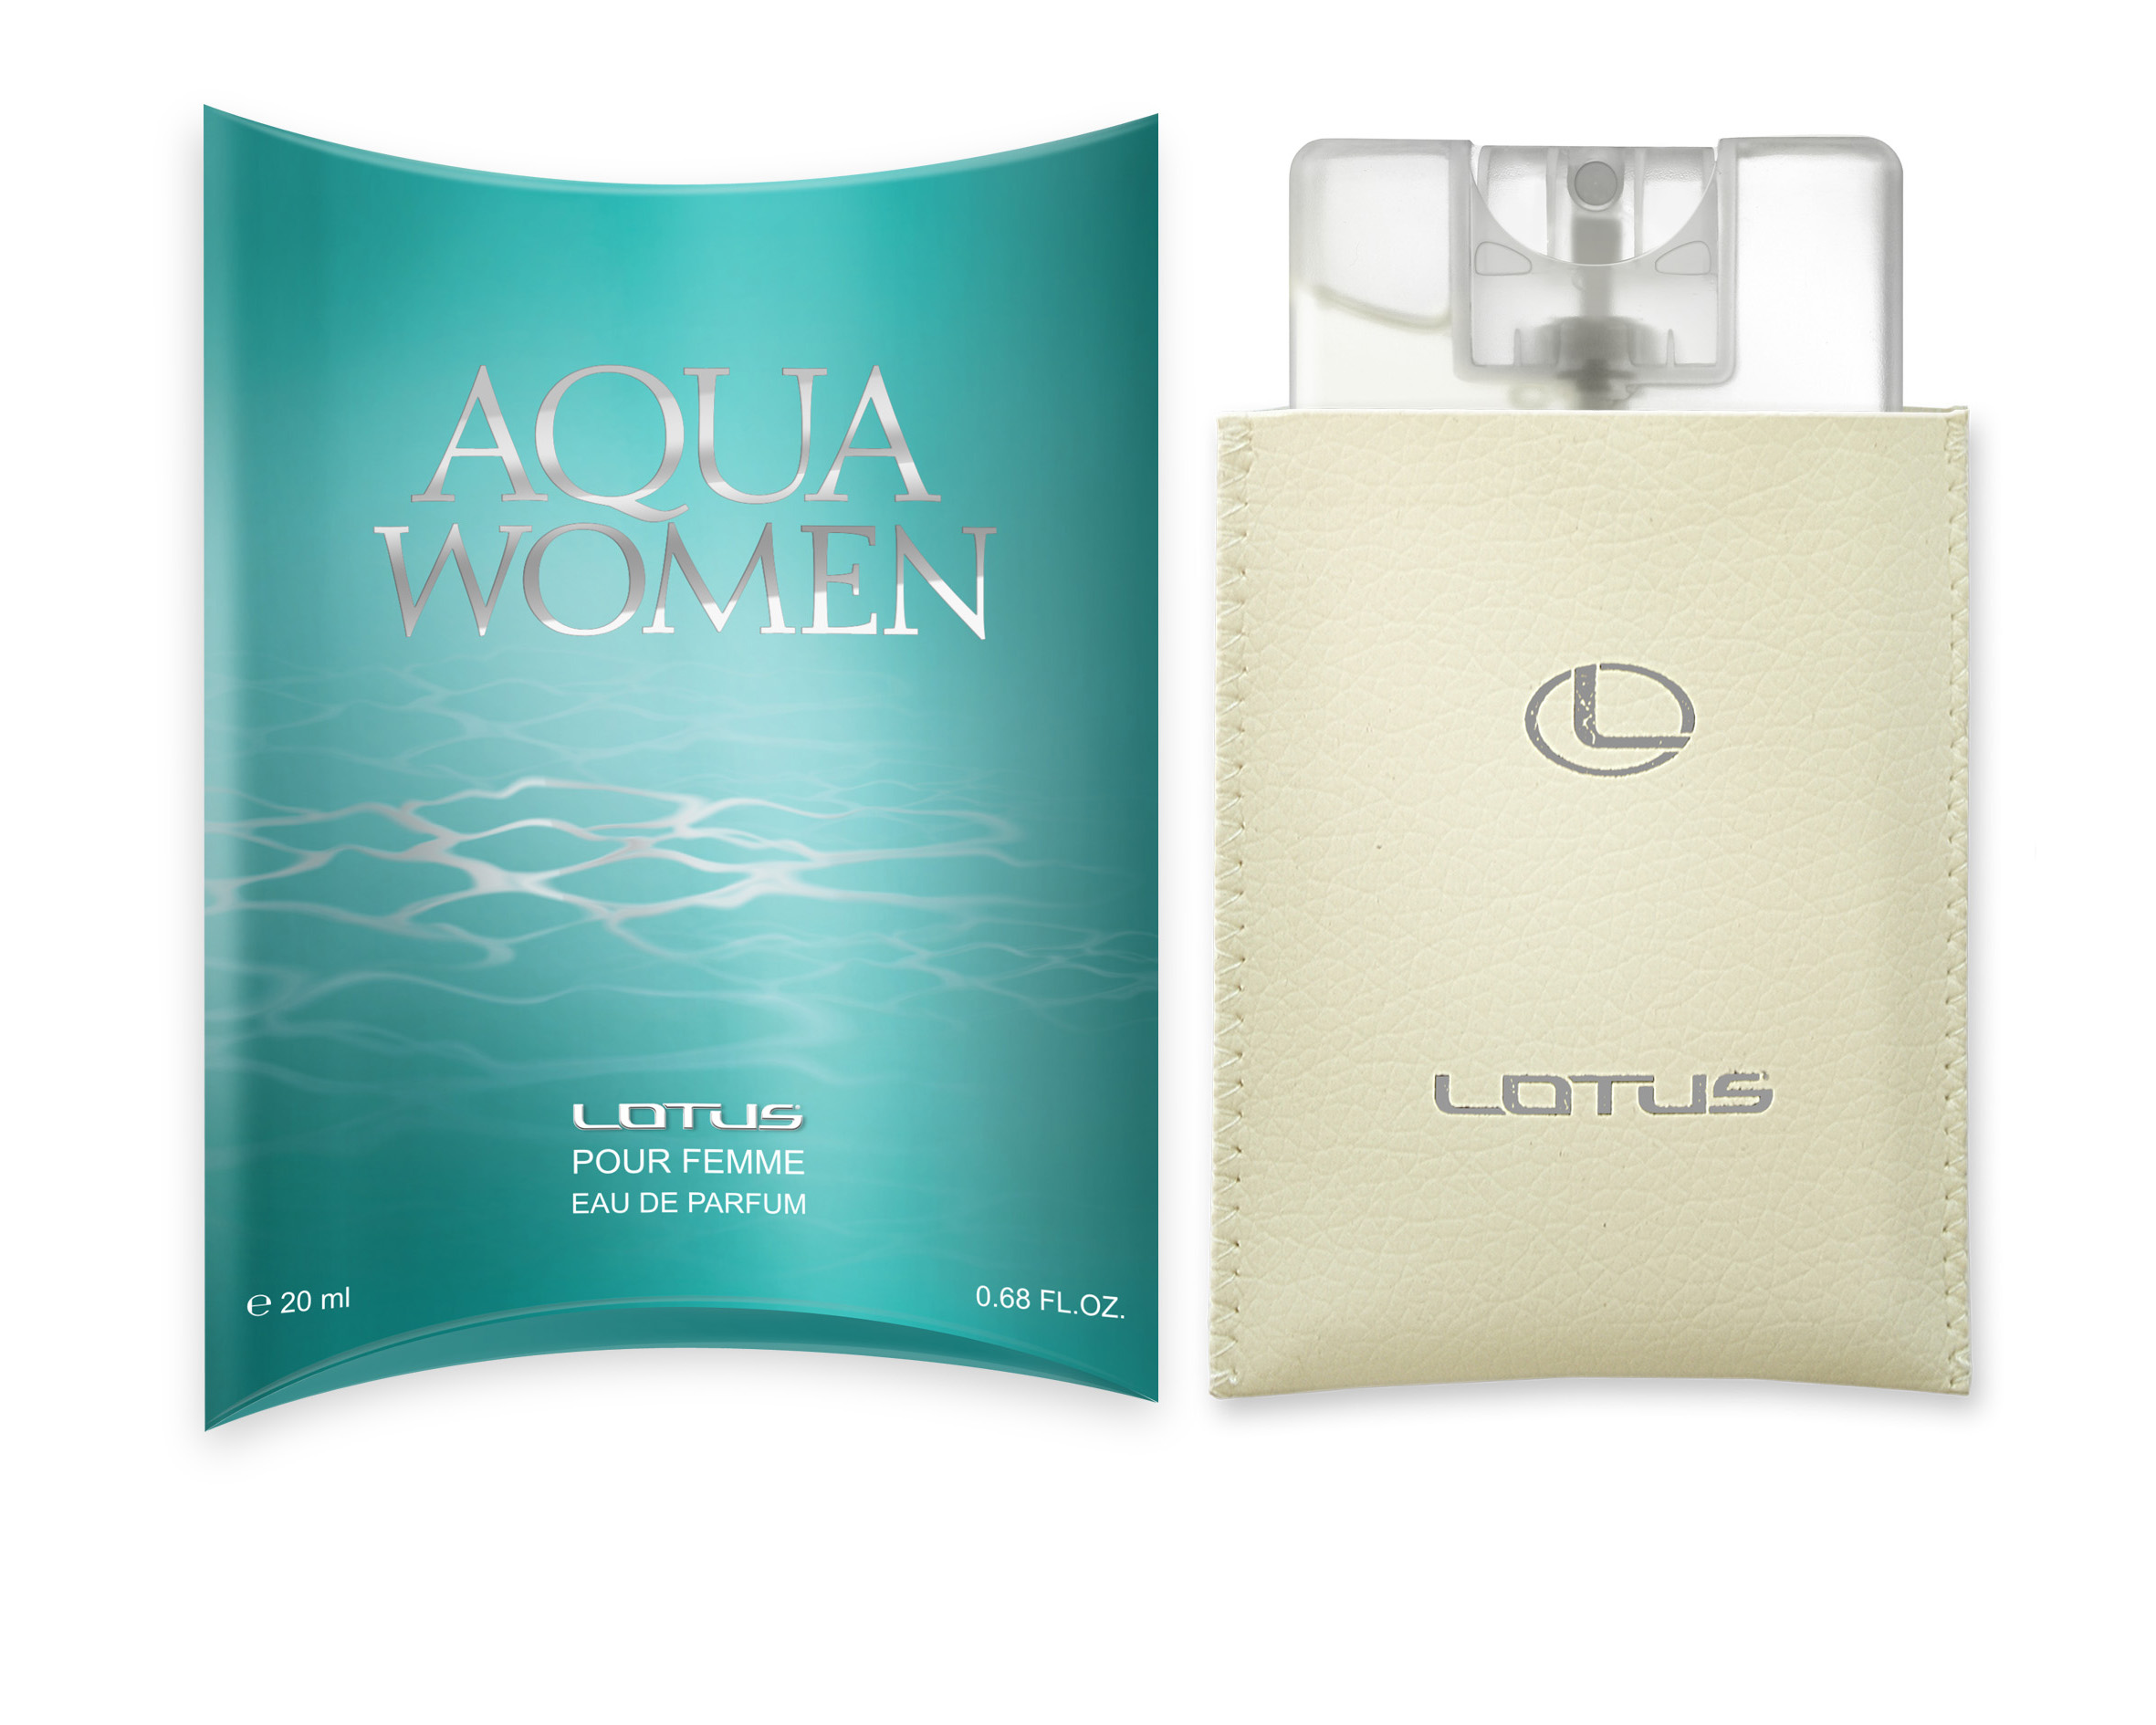 LOTUS Aqua Woman 20 ml 002